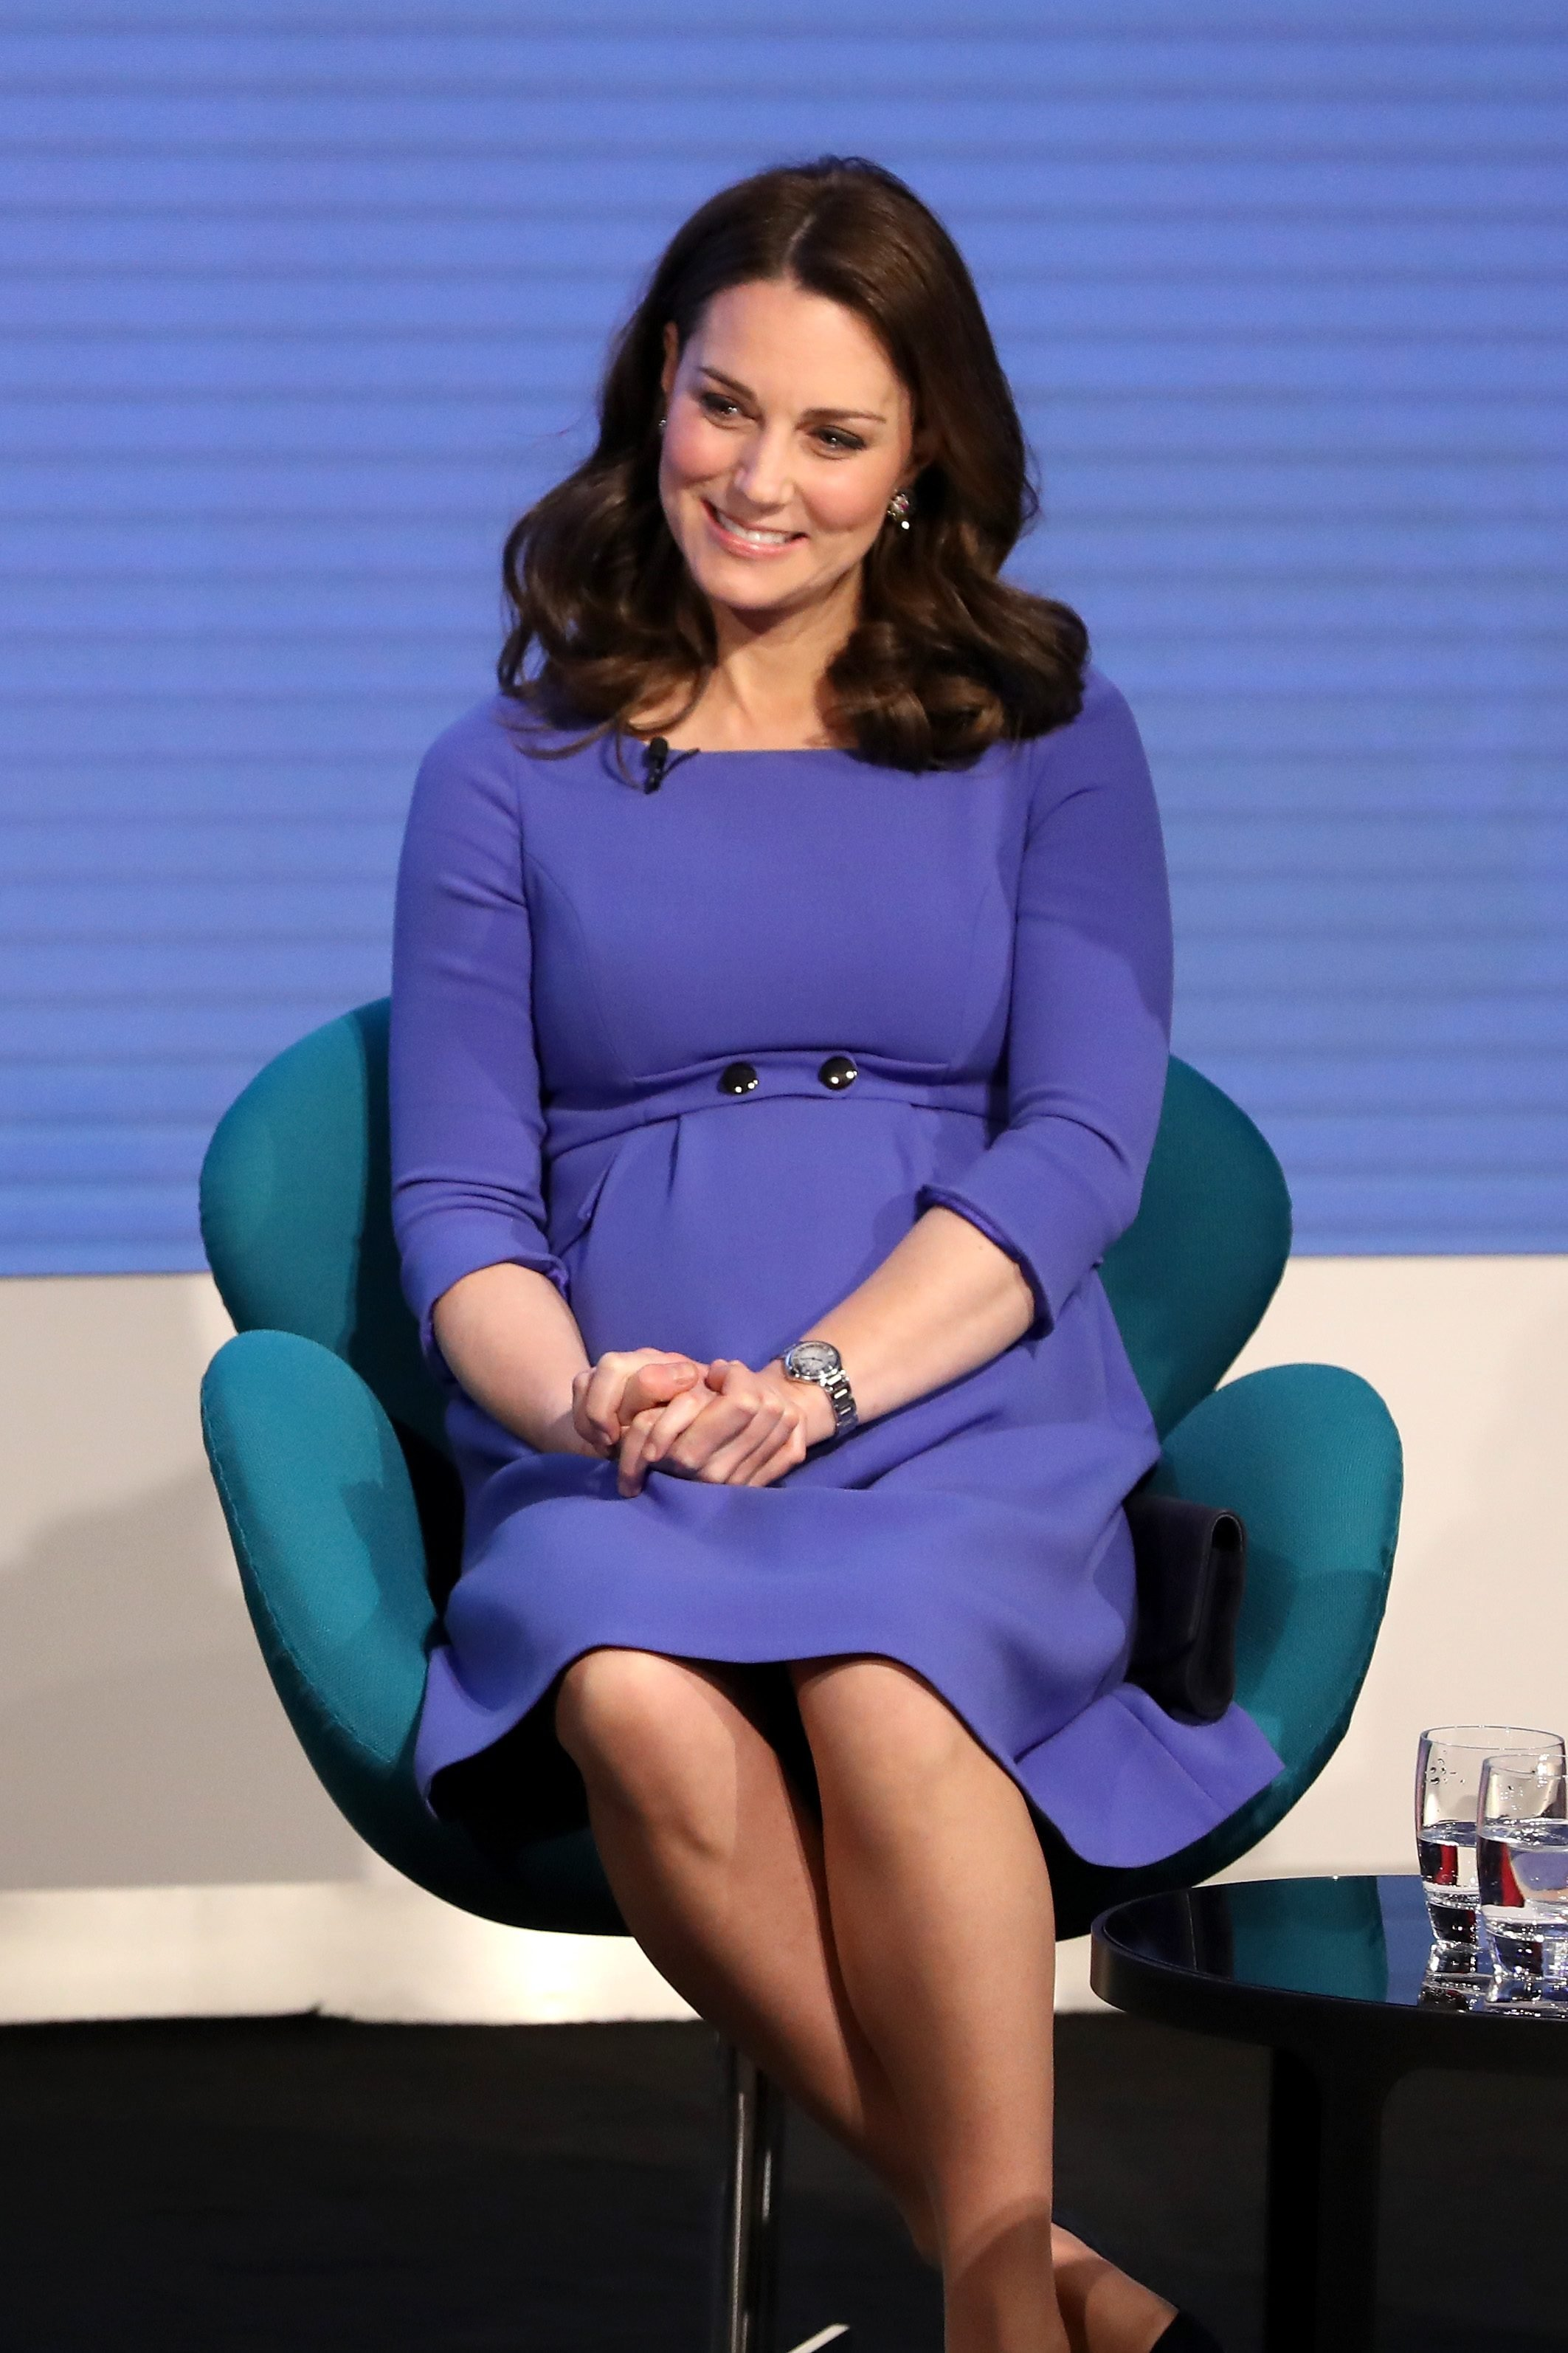 Mandatory Credit: Photo by Shutterstock (9444588bb) Catherine Duchess of Cambridge First Annual Royal Foundation Forum, London, UK - 28 Feb 2018 Under the theme 'Making a Difference Together', the event will showcase the programmes run or initiated by The Royal Foundation. WEARING SERAPHINE